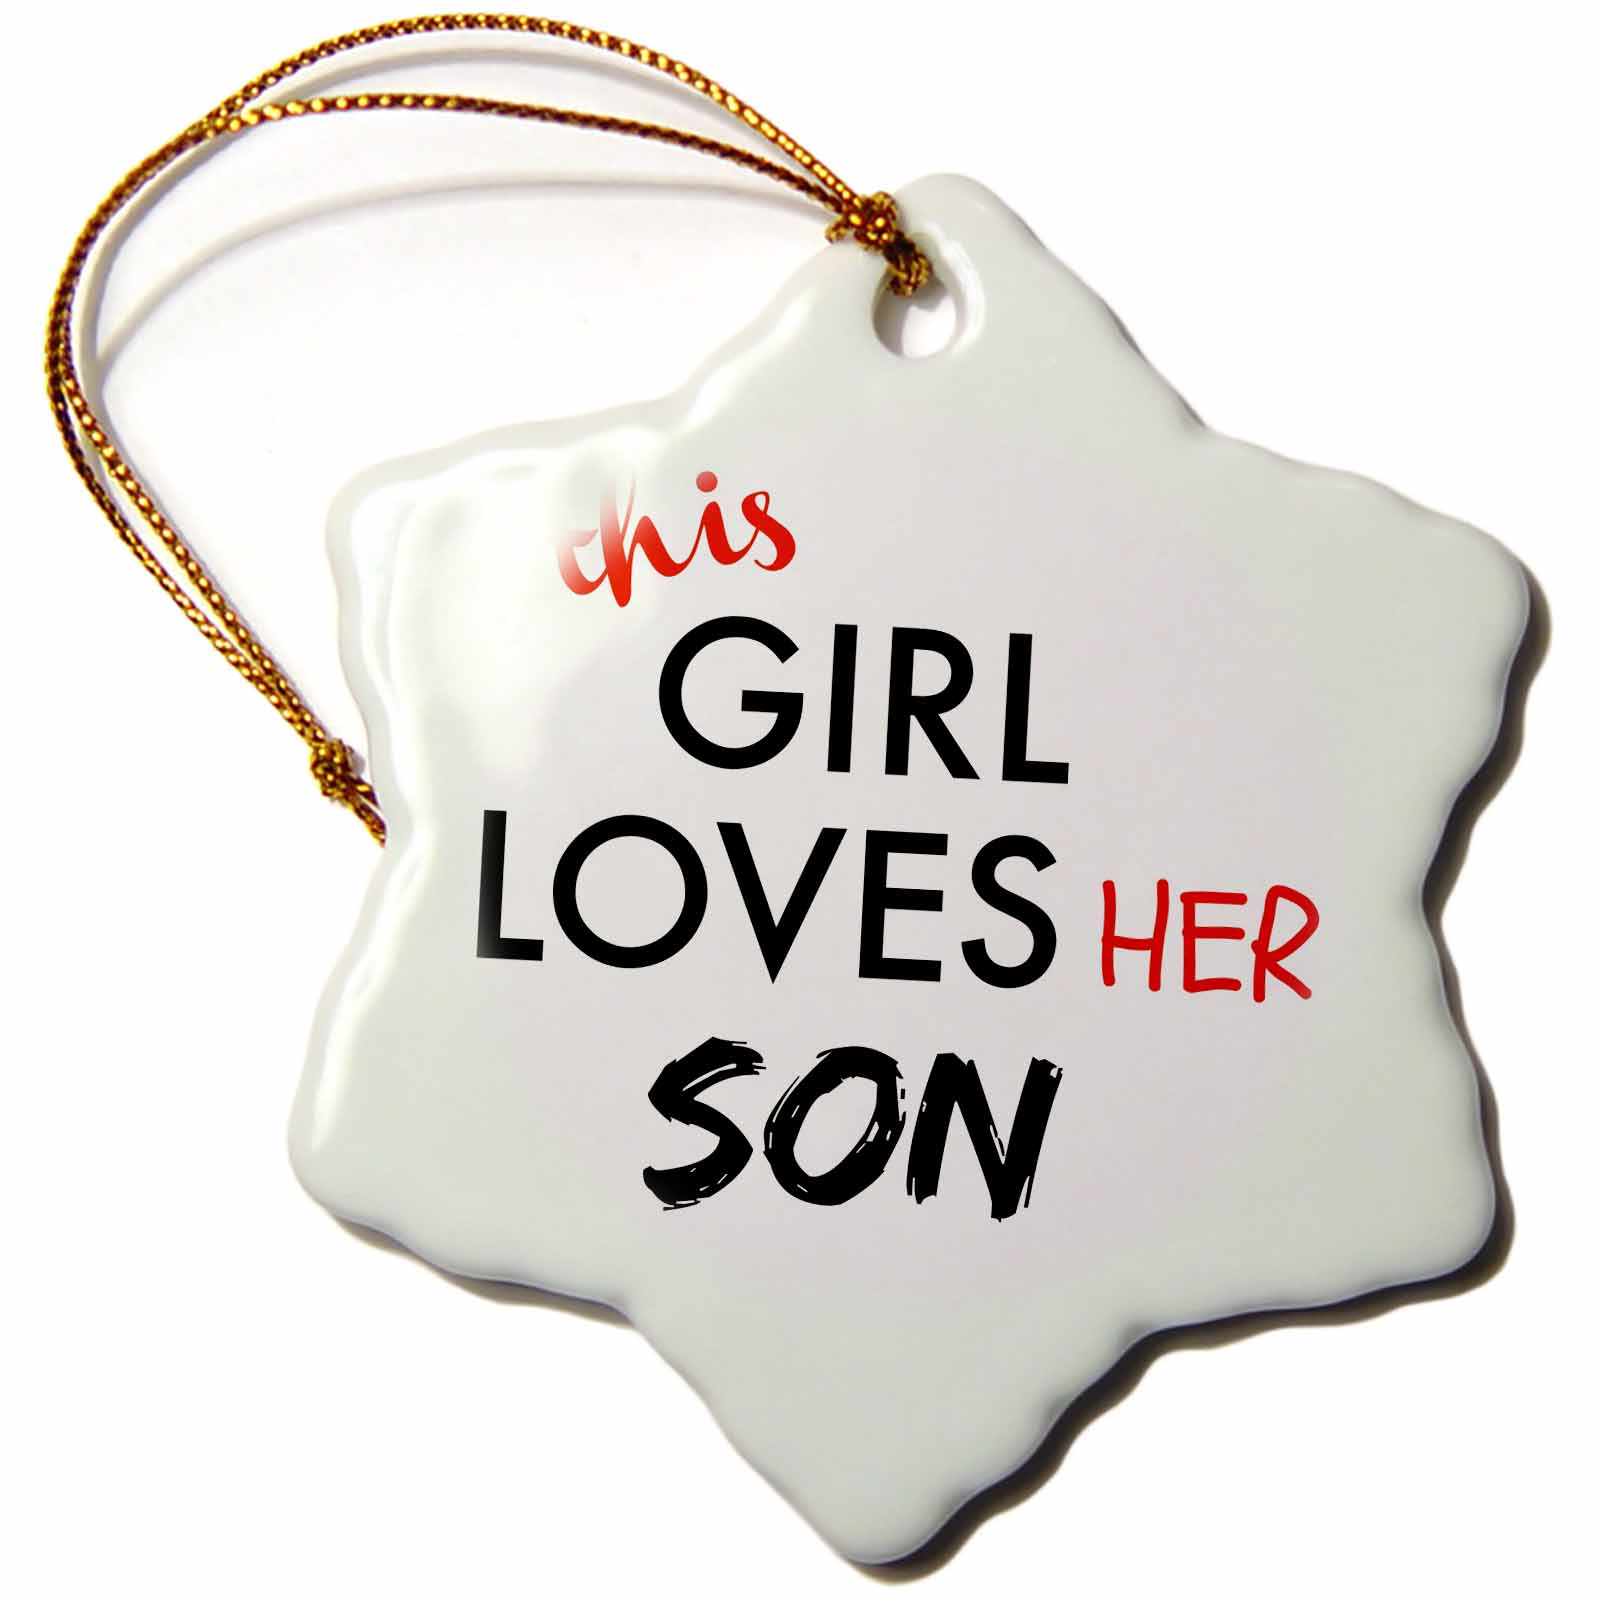 Supplier Generic 3d Rose This Girl Loves Her Son Black And Red Lettering, Snowflake Ornament, Porcelain, 3 - inch